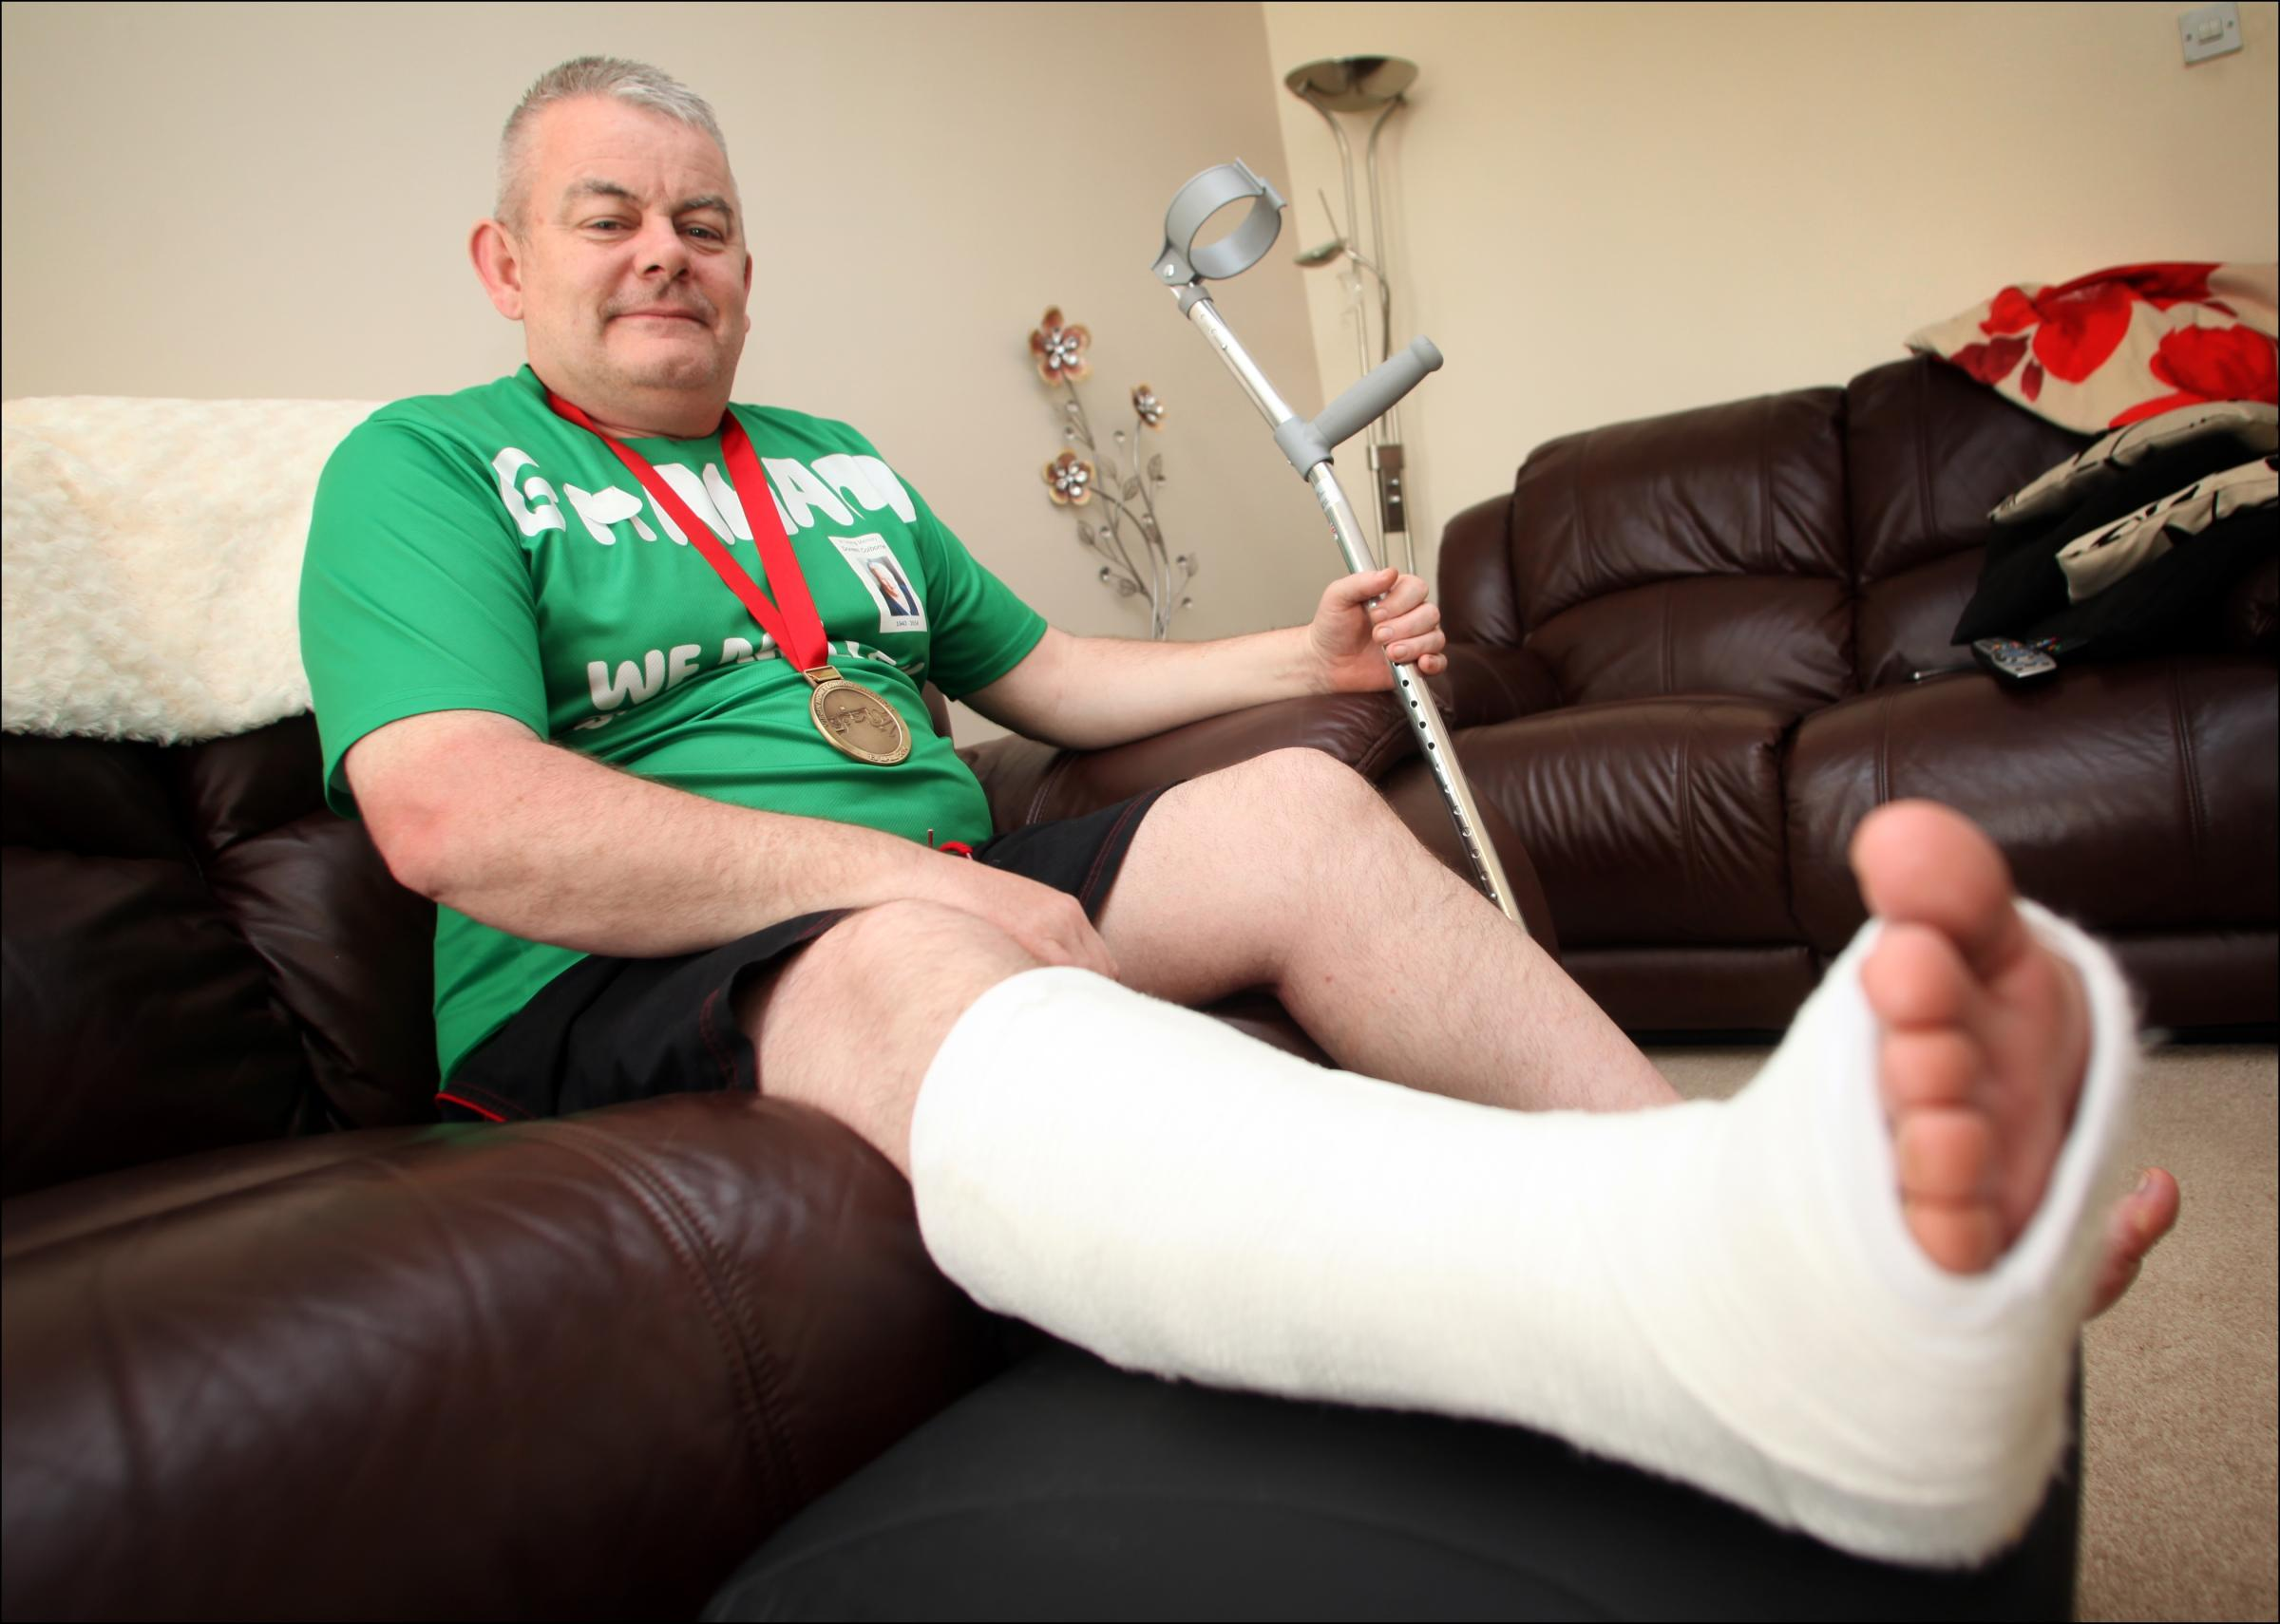 Runner completed marathon on a broken foot